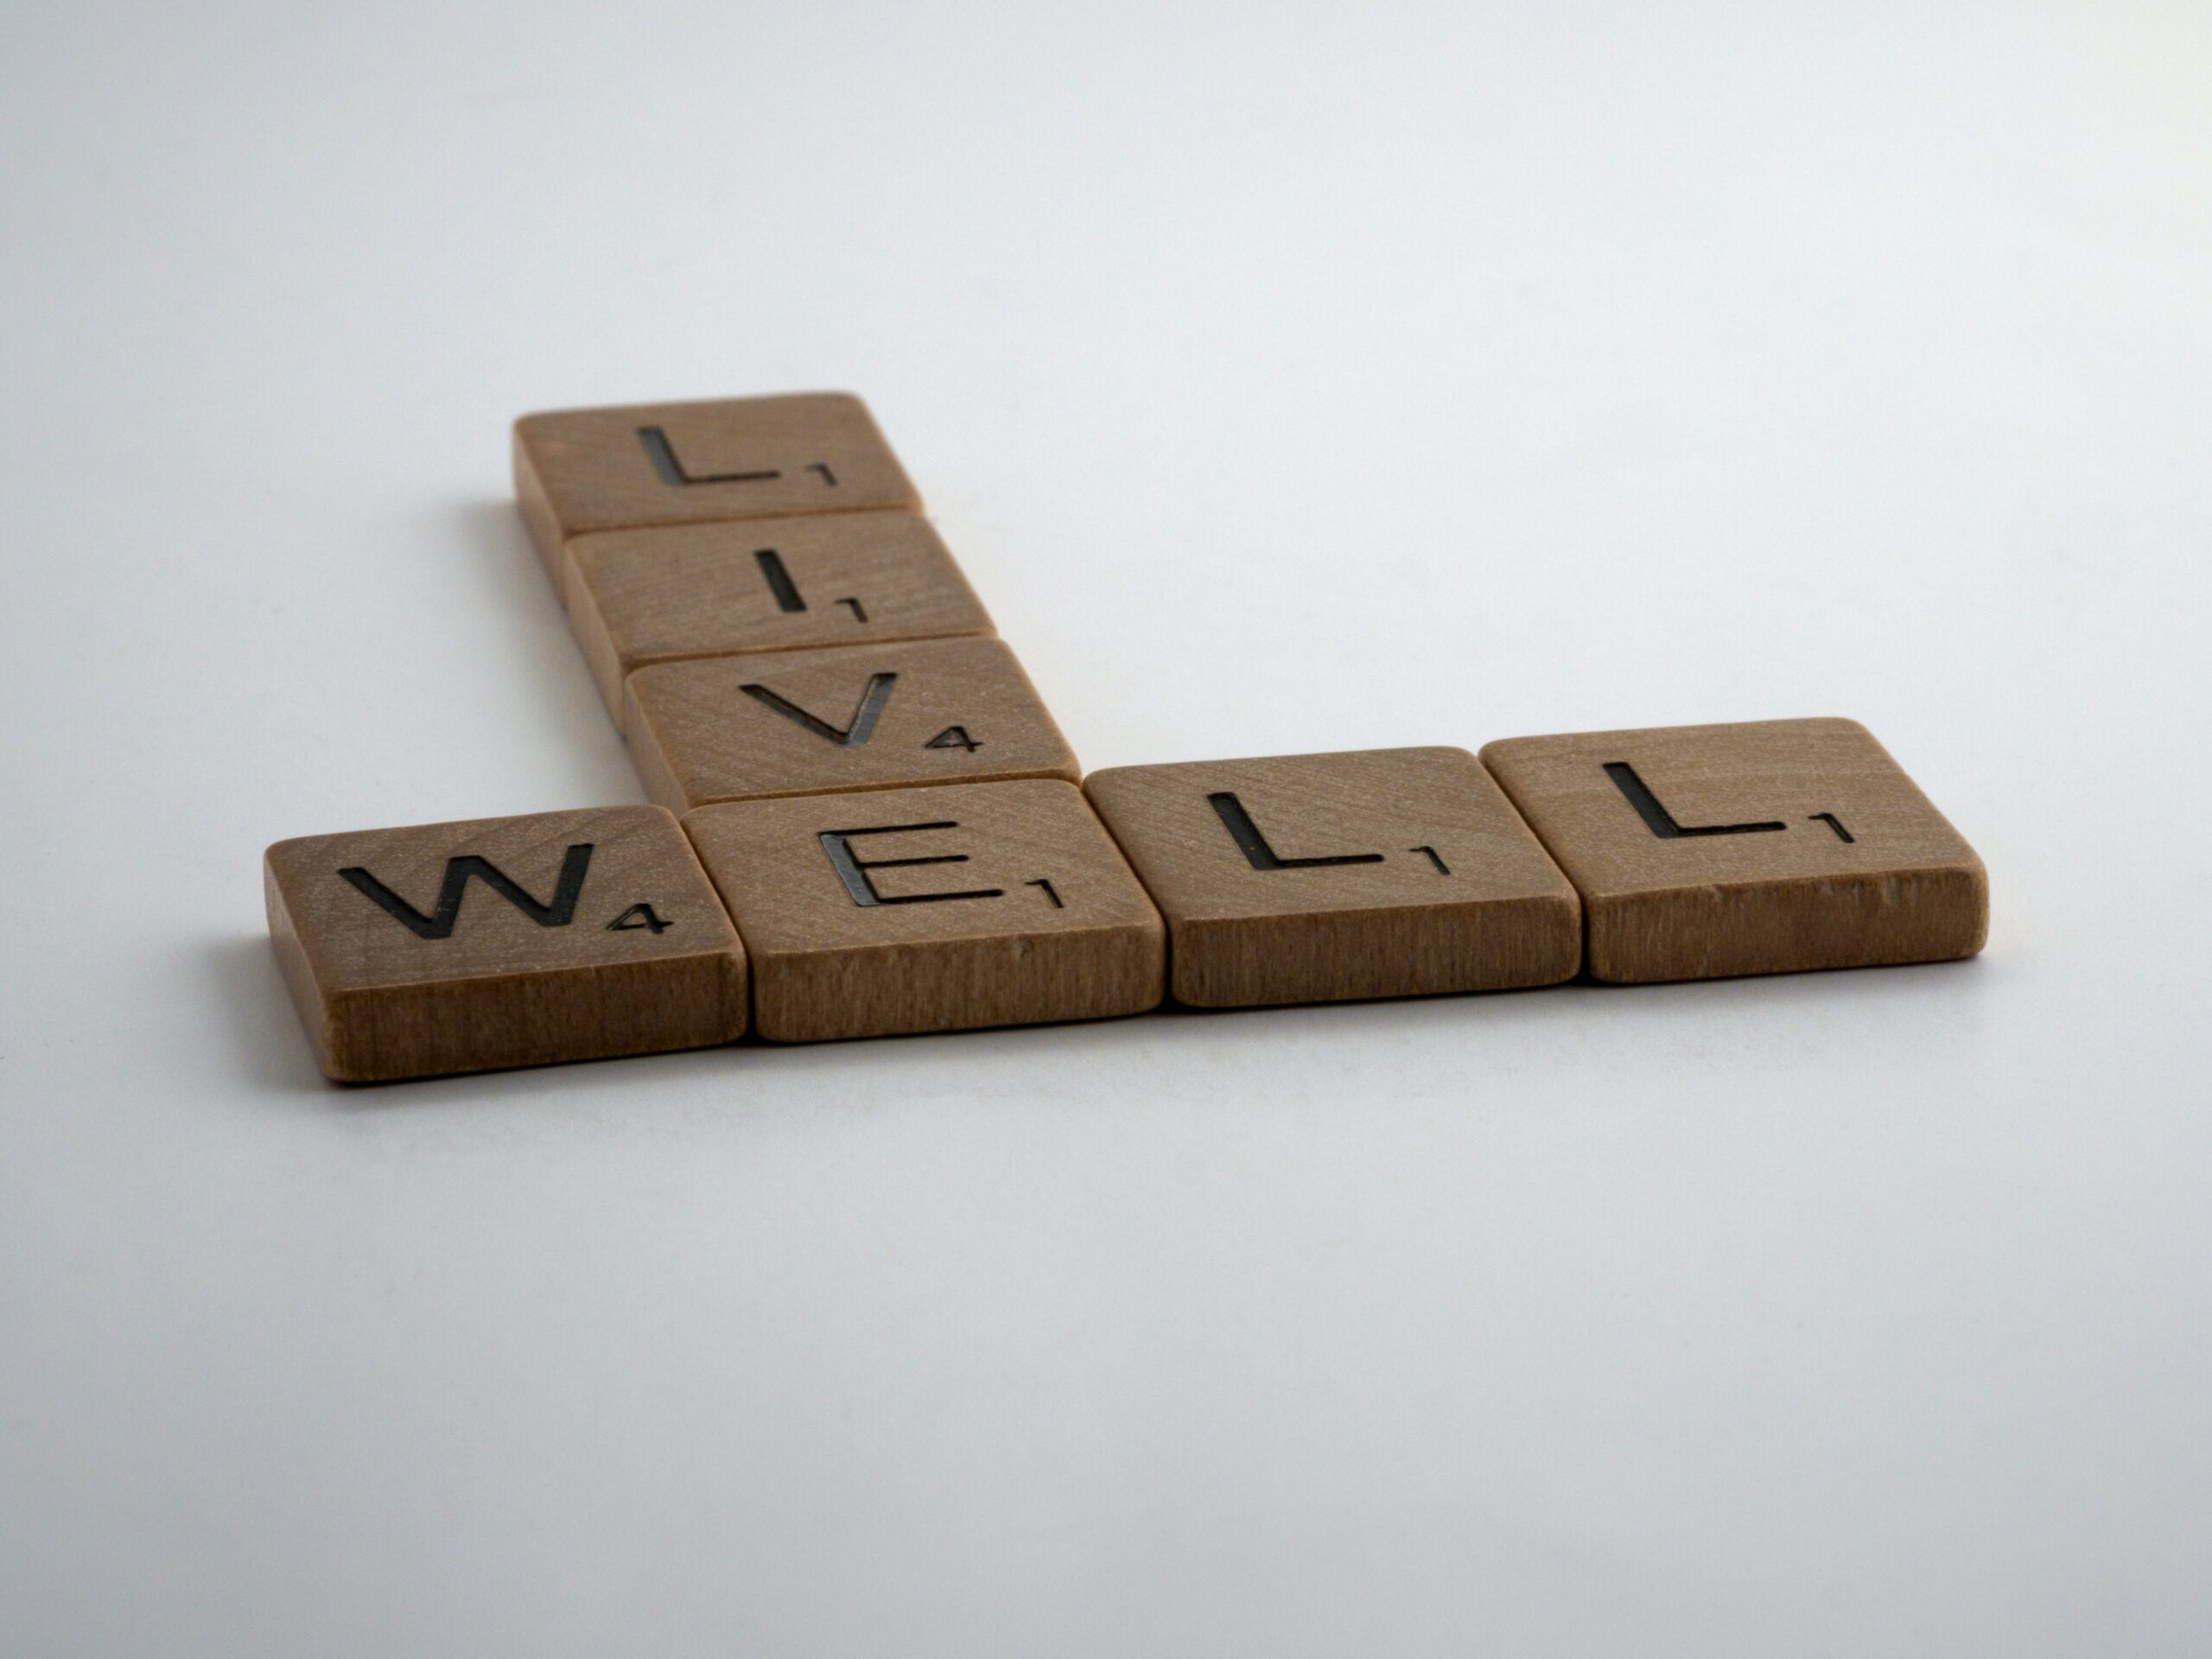 Live Well - Life Insurance Image